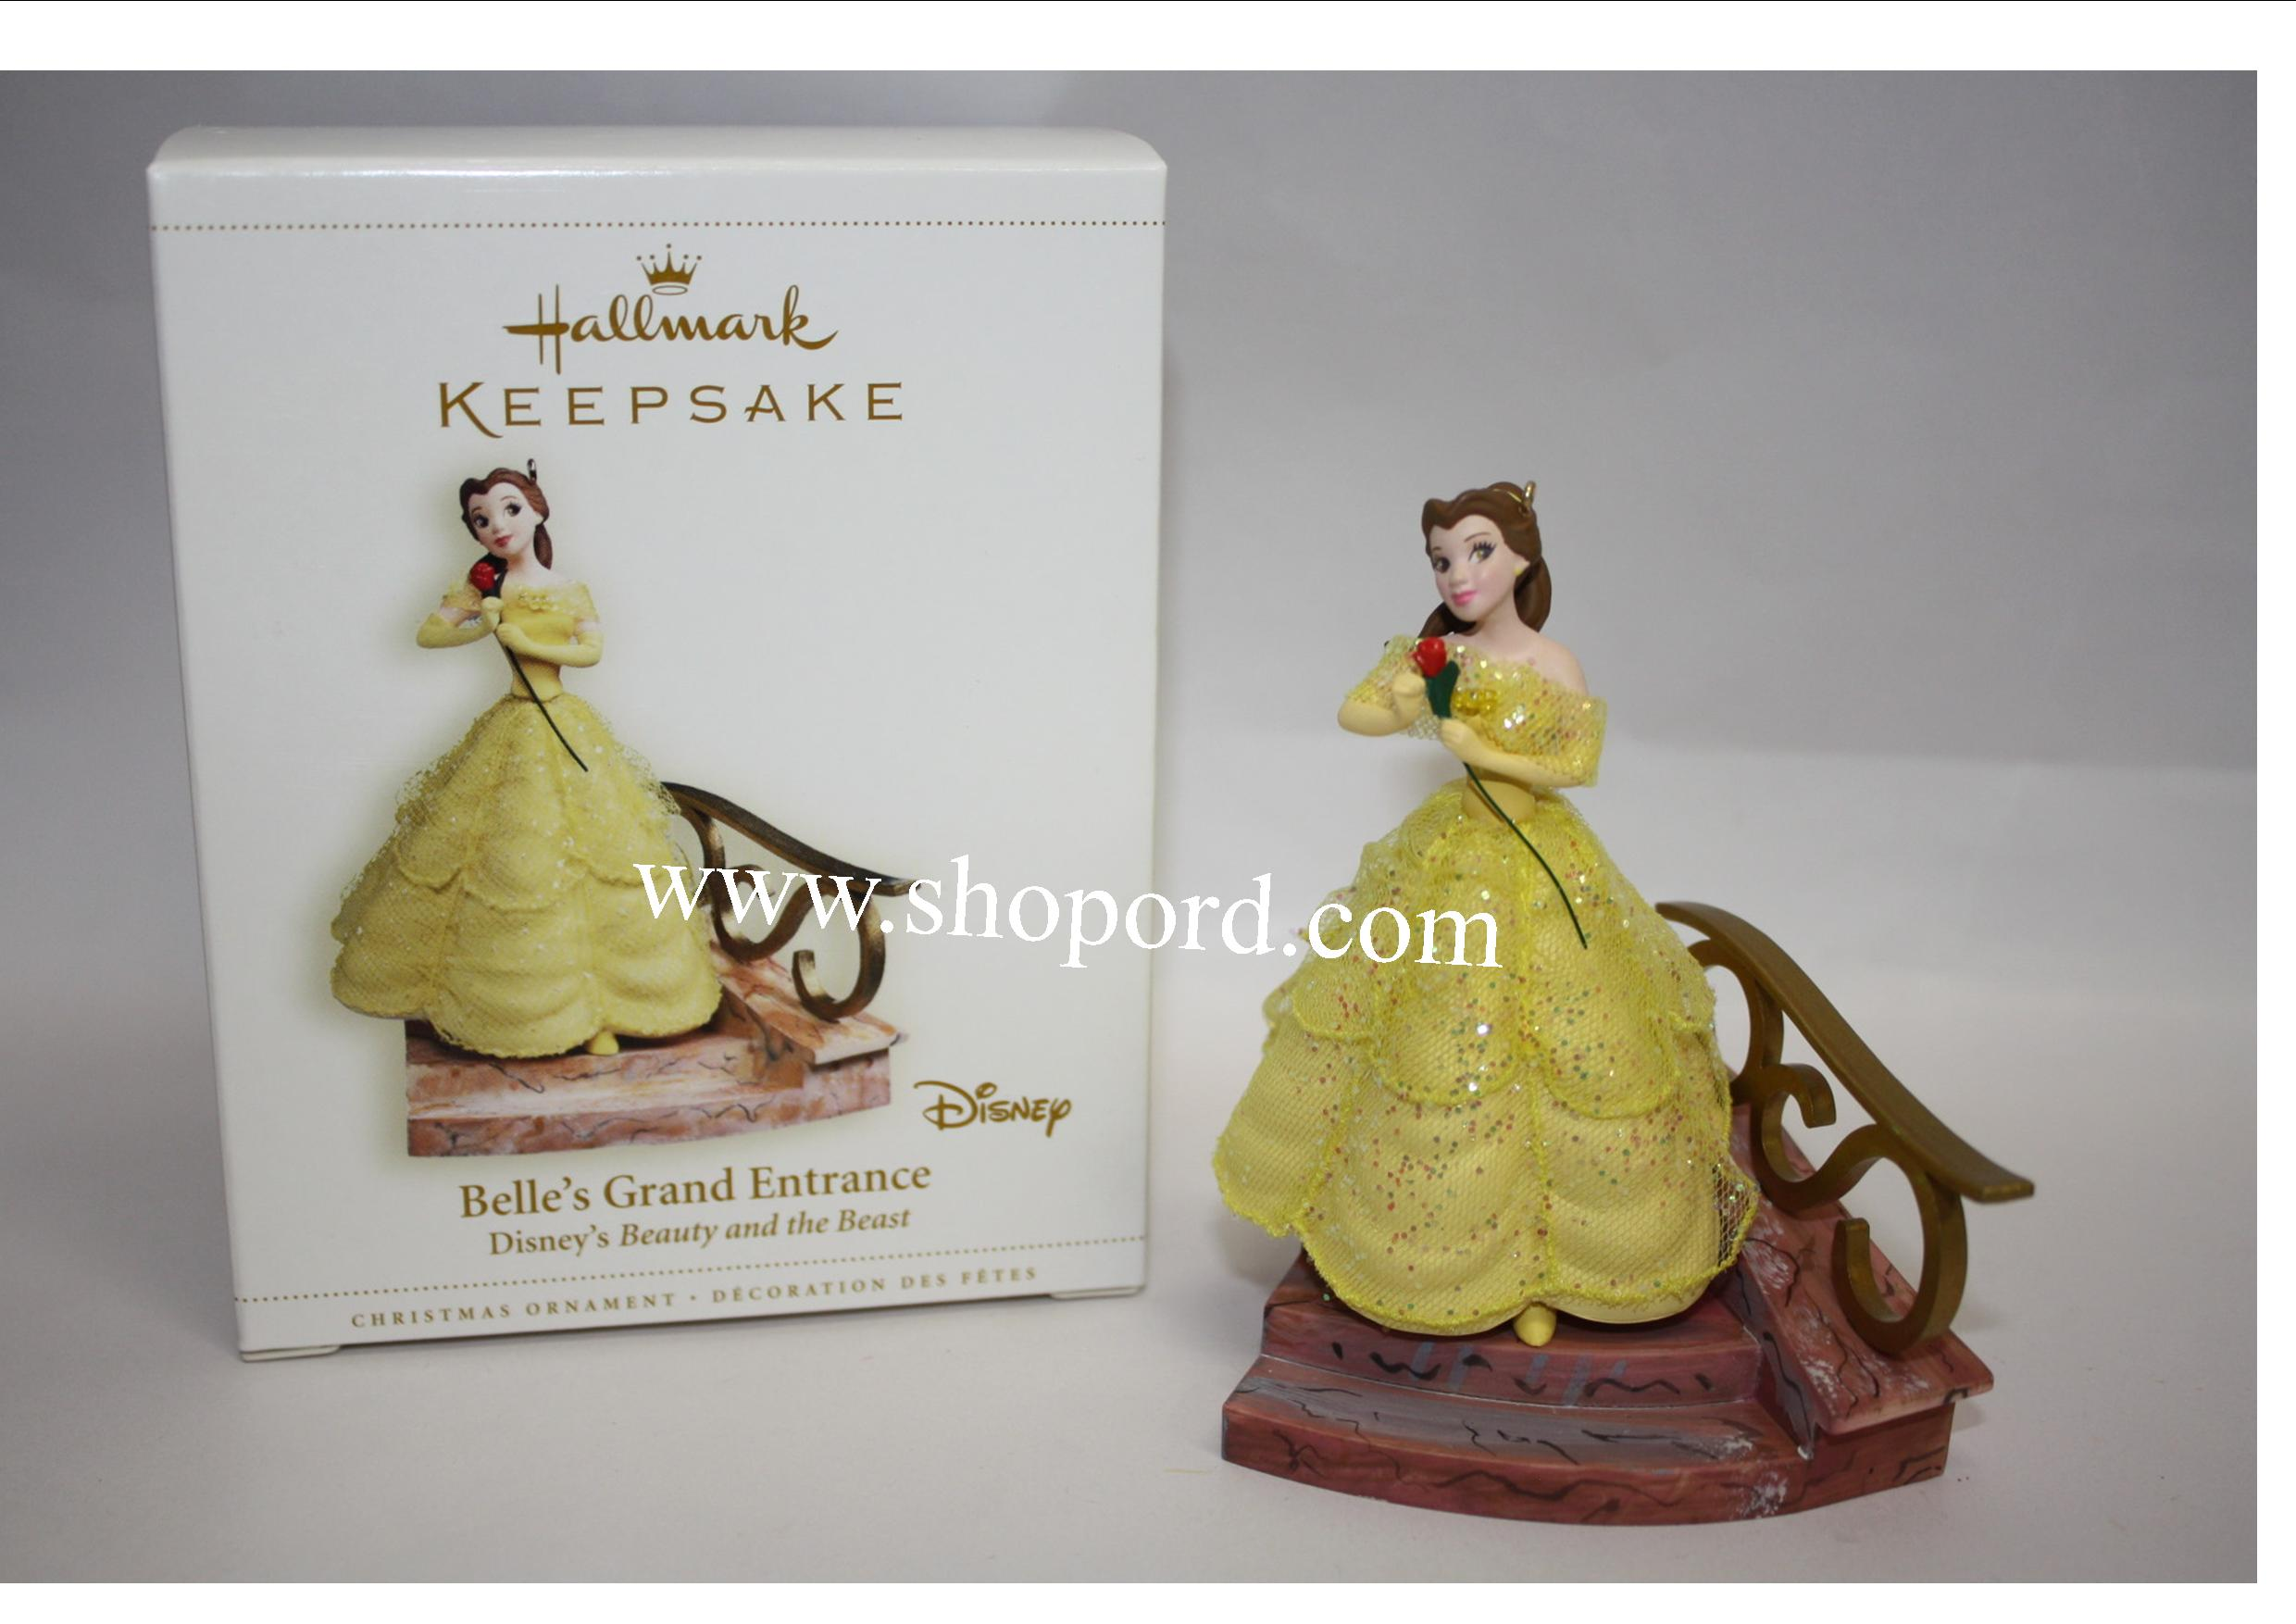 hallmark 2006 belles grand entrance disneys beauty and the beast qxd8363 - Disney Beauty And The Beast Christmas Decorations